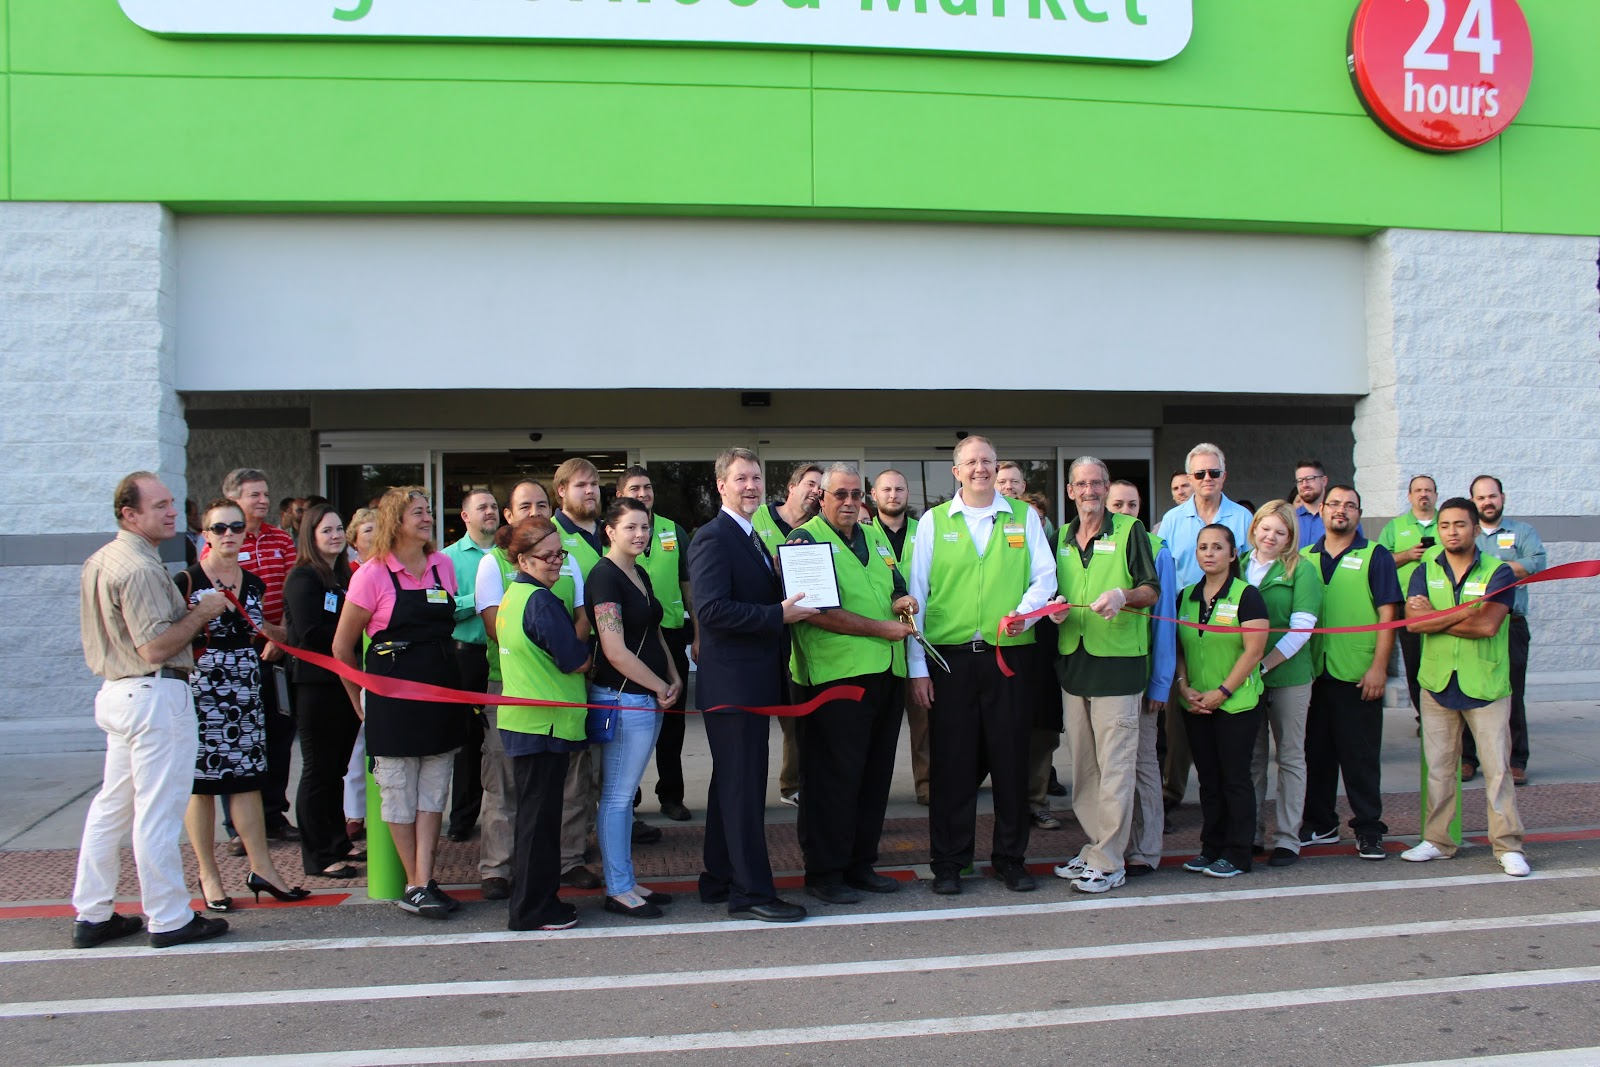 Congratulations to Walmart Neighborhood Market located at 2175 W. Ruthrauff Rd, on their Re-Grand Opening.